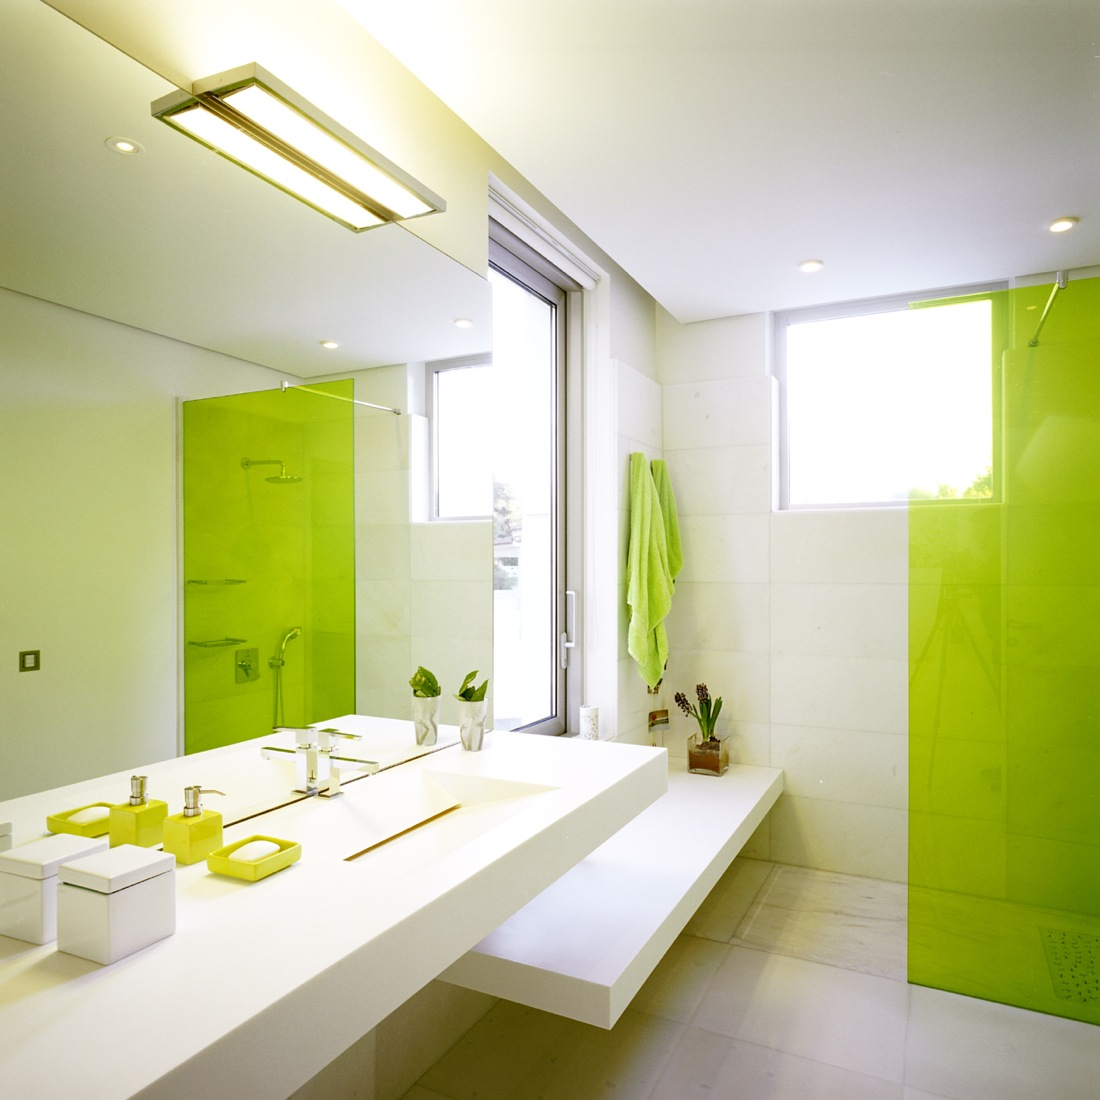 Minimalist bathroom designs home designs project for Bathroom interior designs